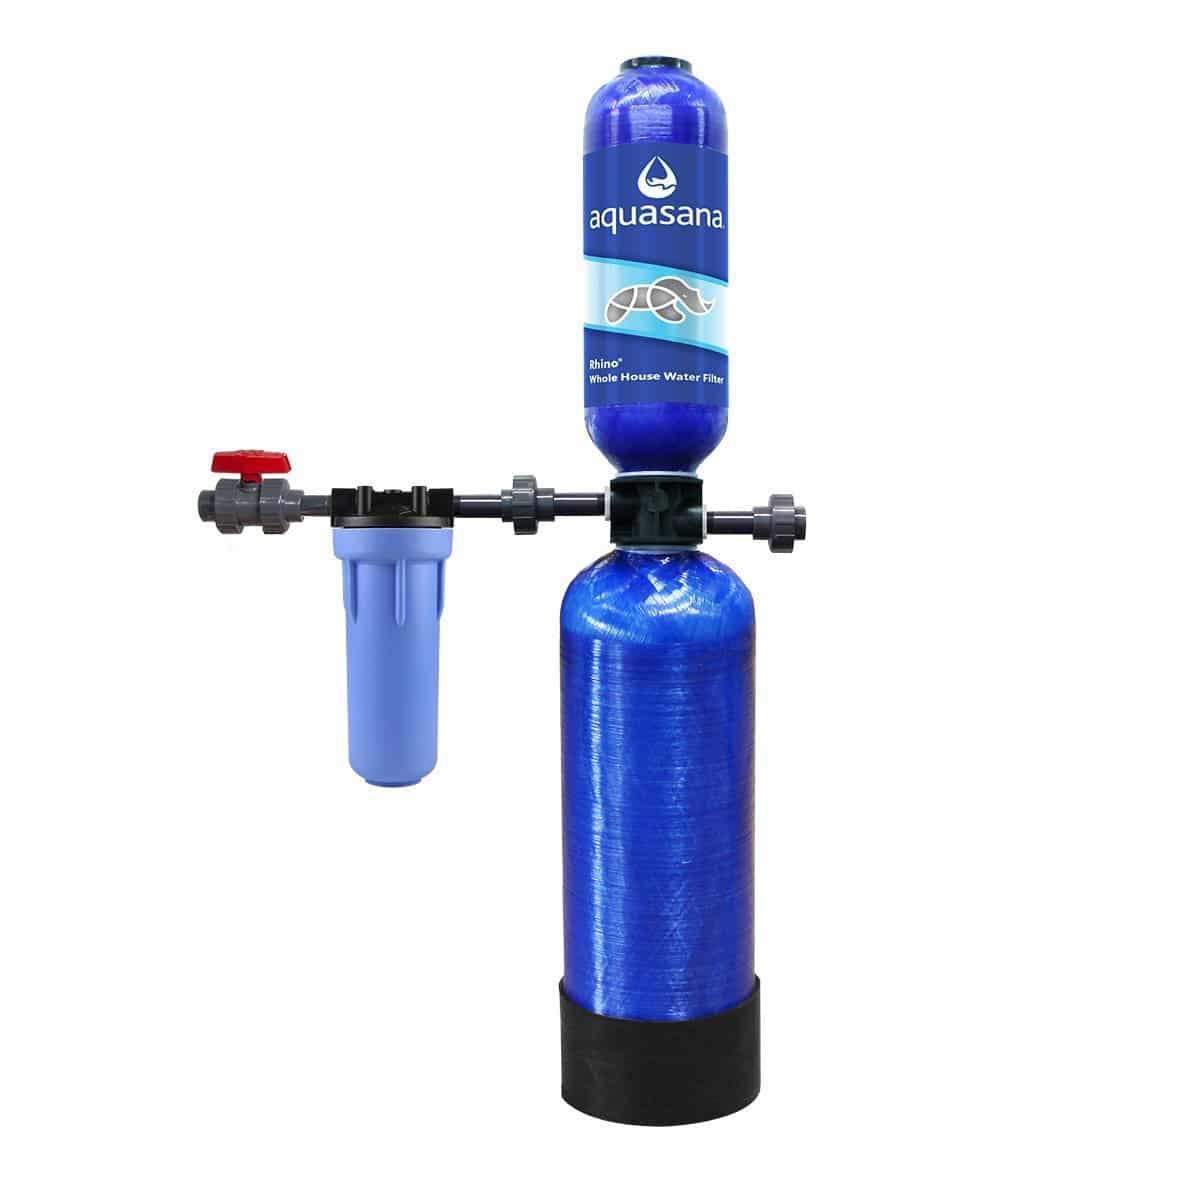 Best Water Filtration System >> The Aquasana Rhino EQ-600 System Review